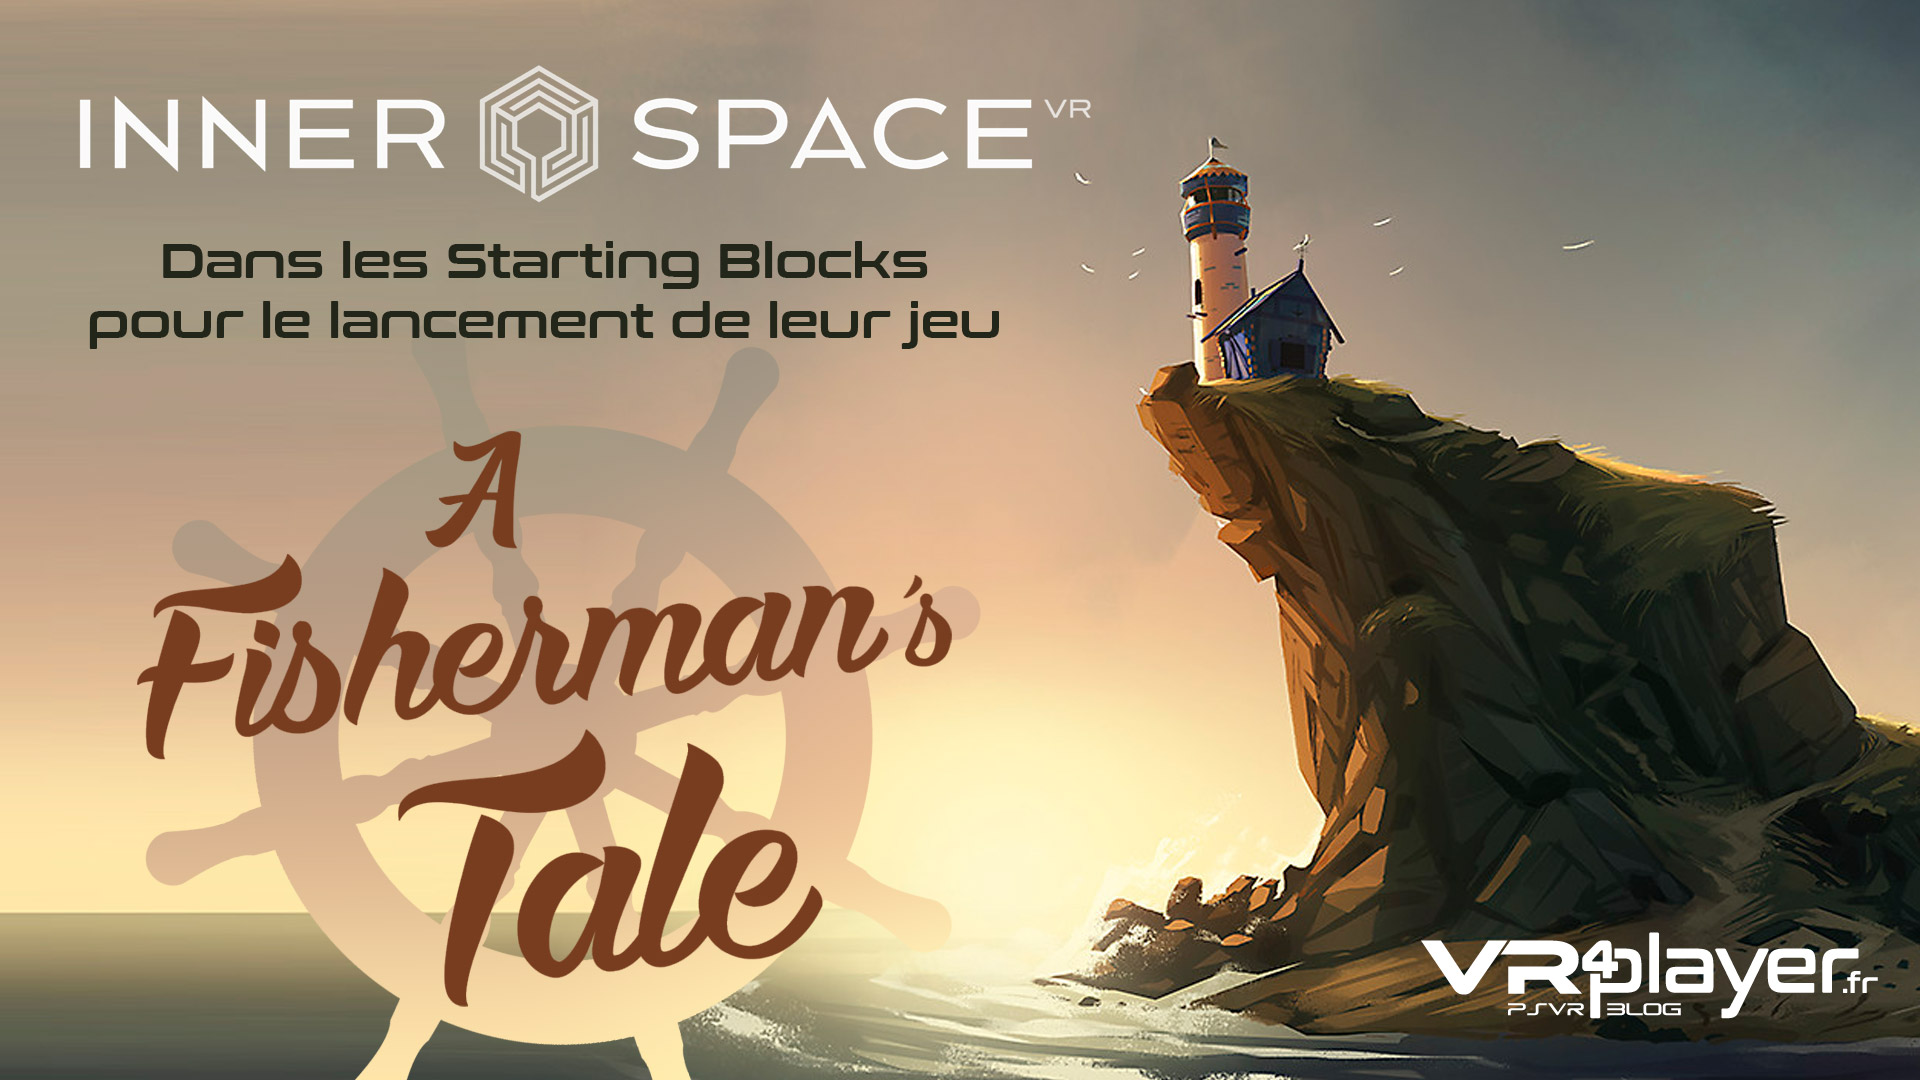 A Fisherman's Tale PlayStation VR, PSVR,VR4Player